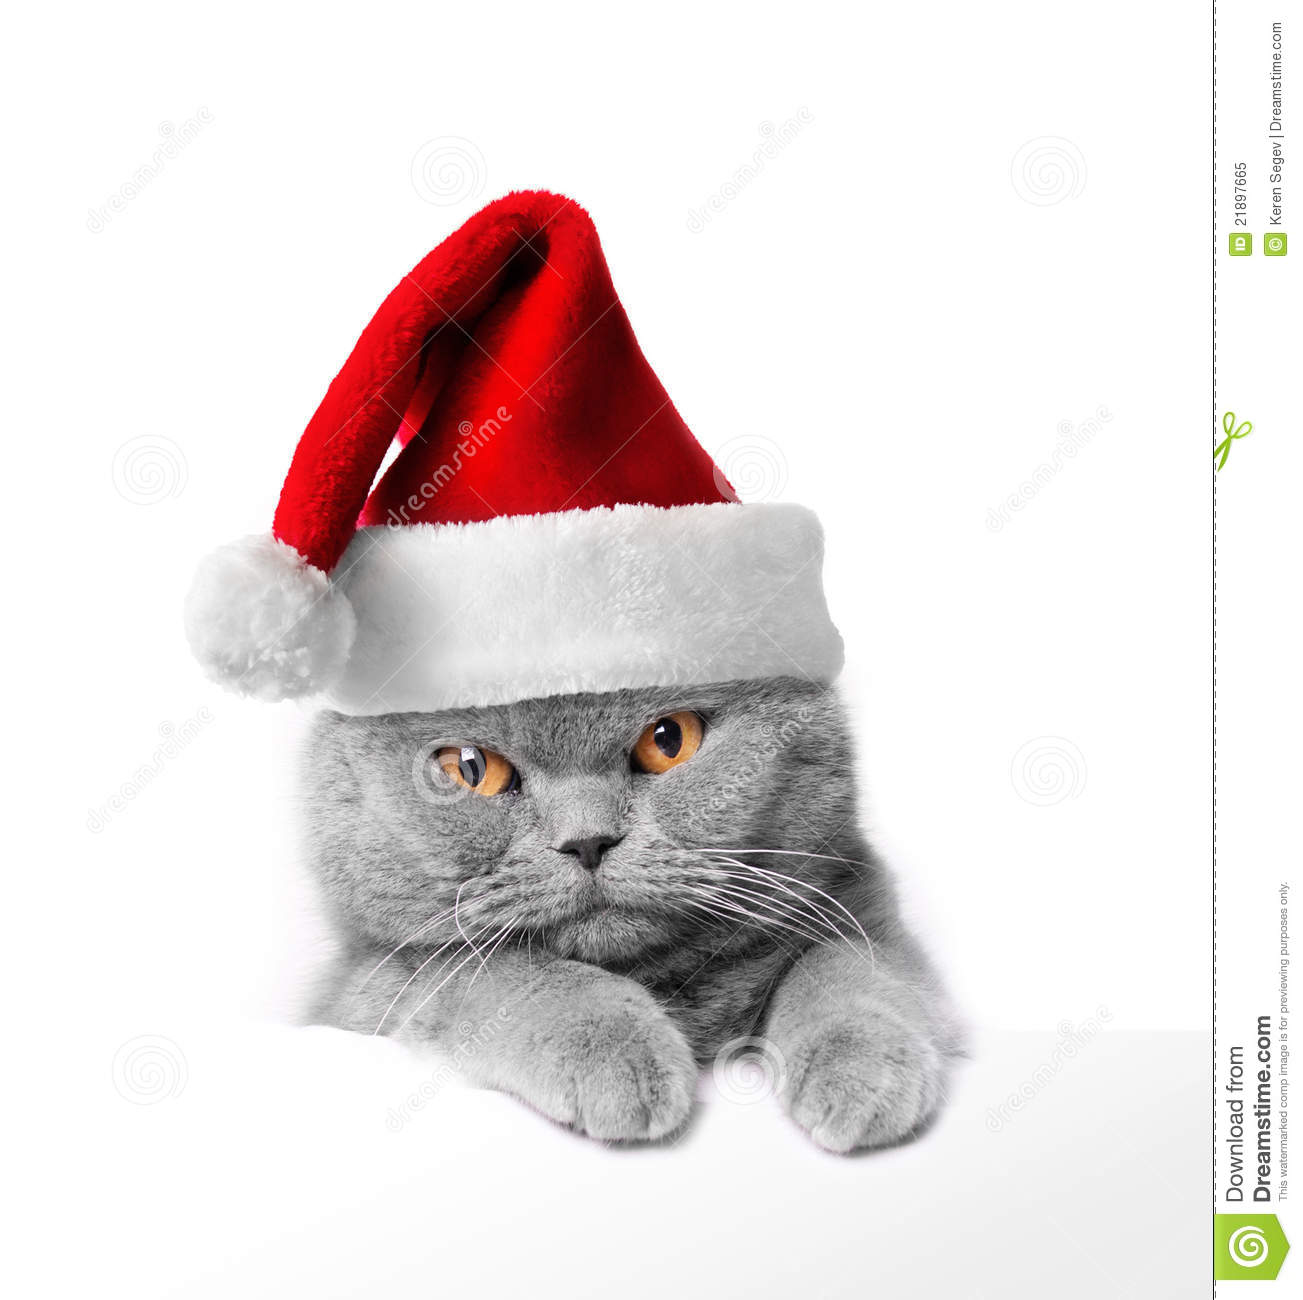 Christmas Cat Royalty Free Stock Photo - Image: 21897665